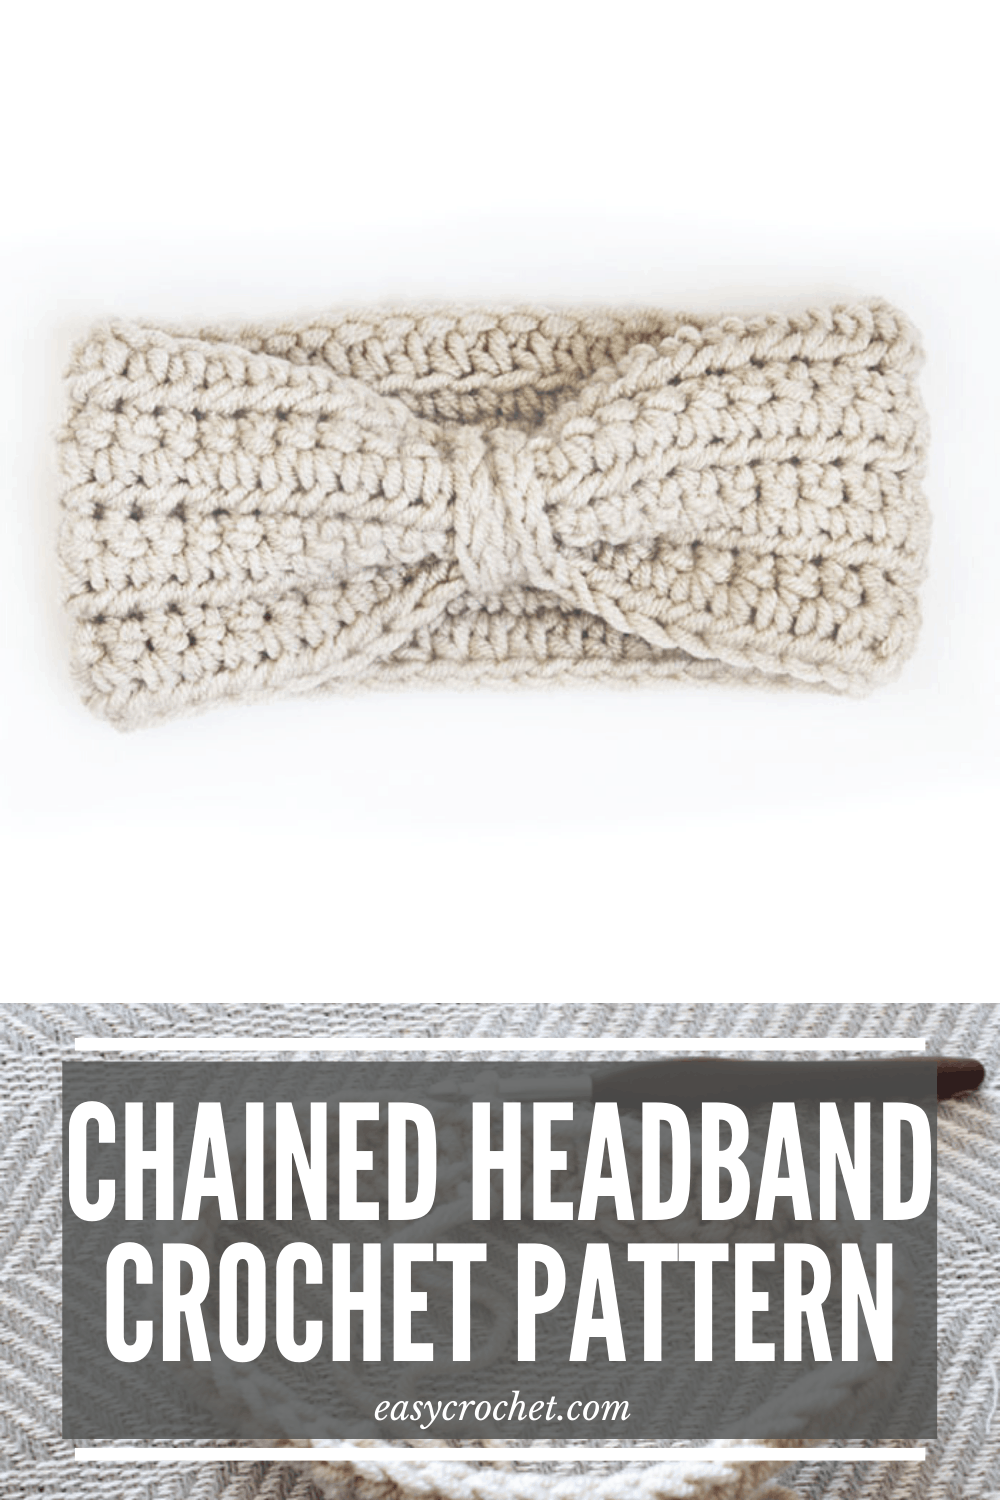 Free crochet ear warmer crochet pattern for an easy to crochet headband. Find this free crochet pattern at easycrochet.com via @easycrochetcom